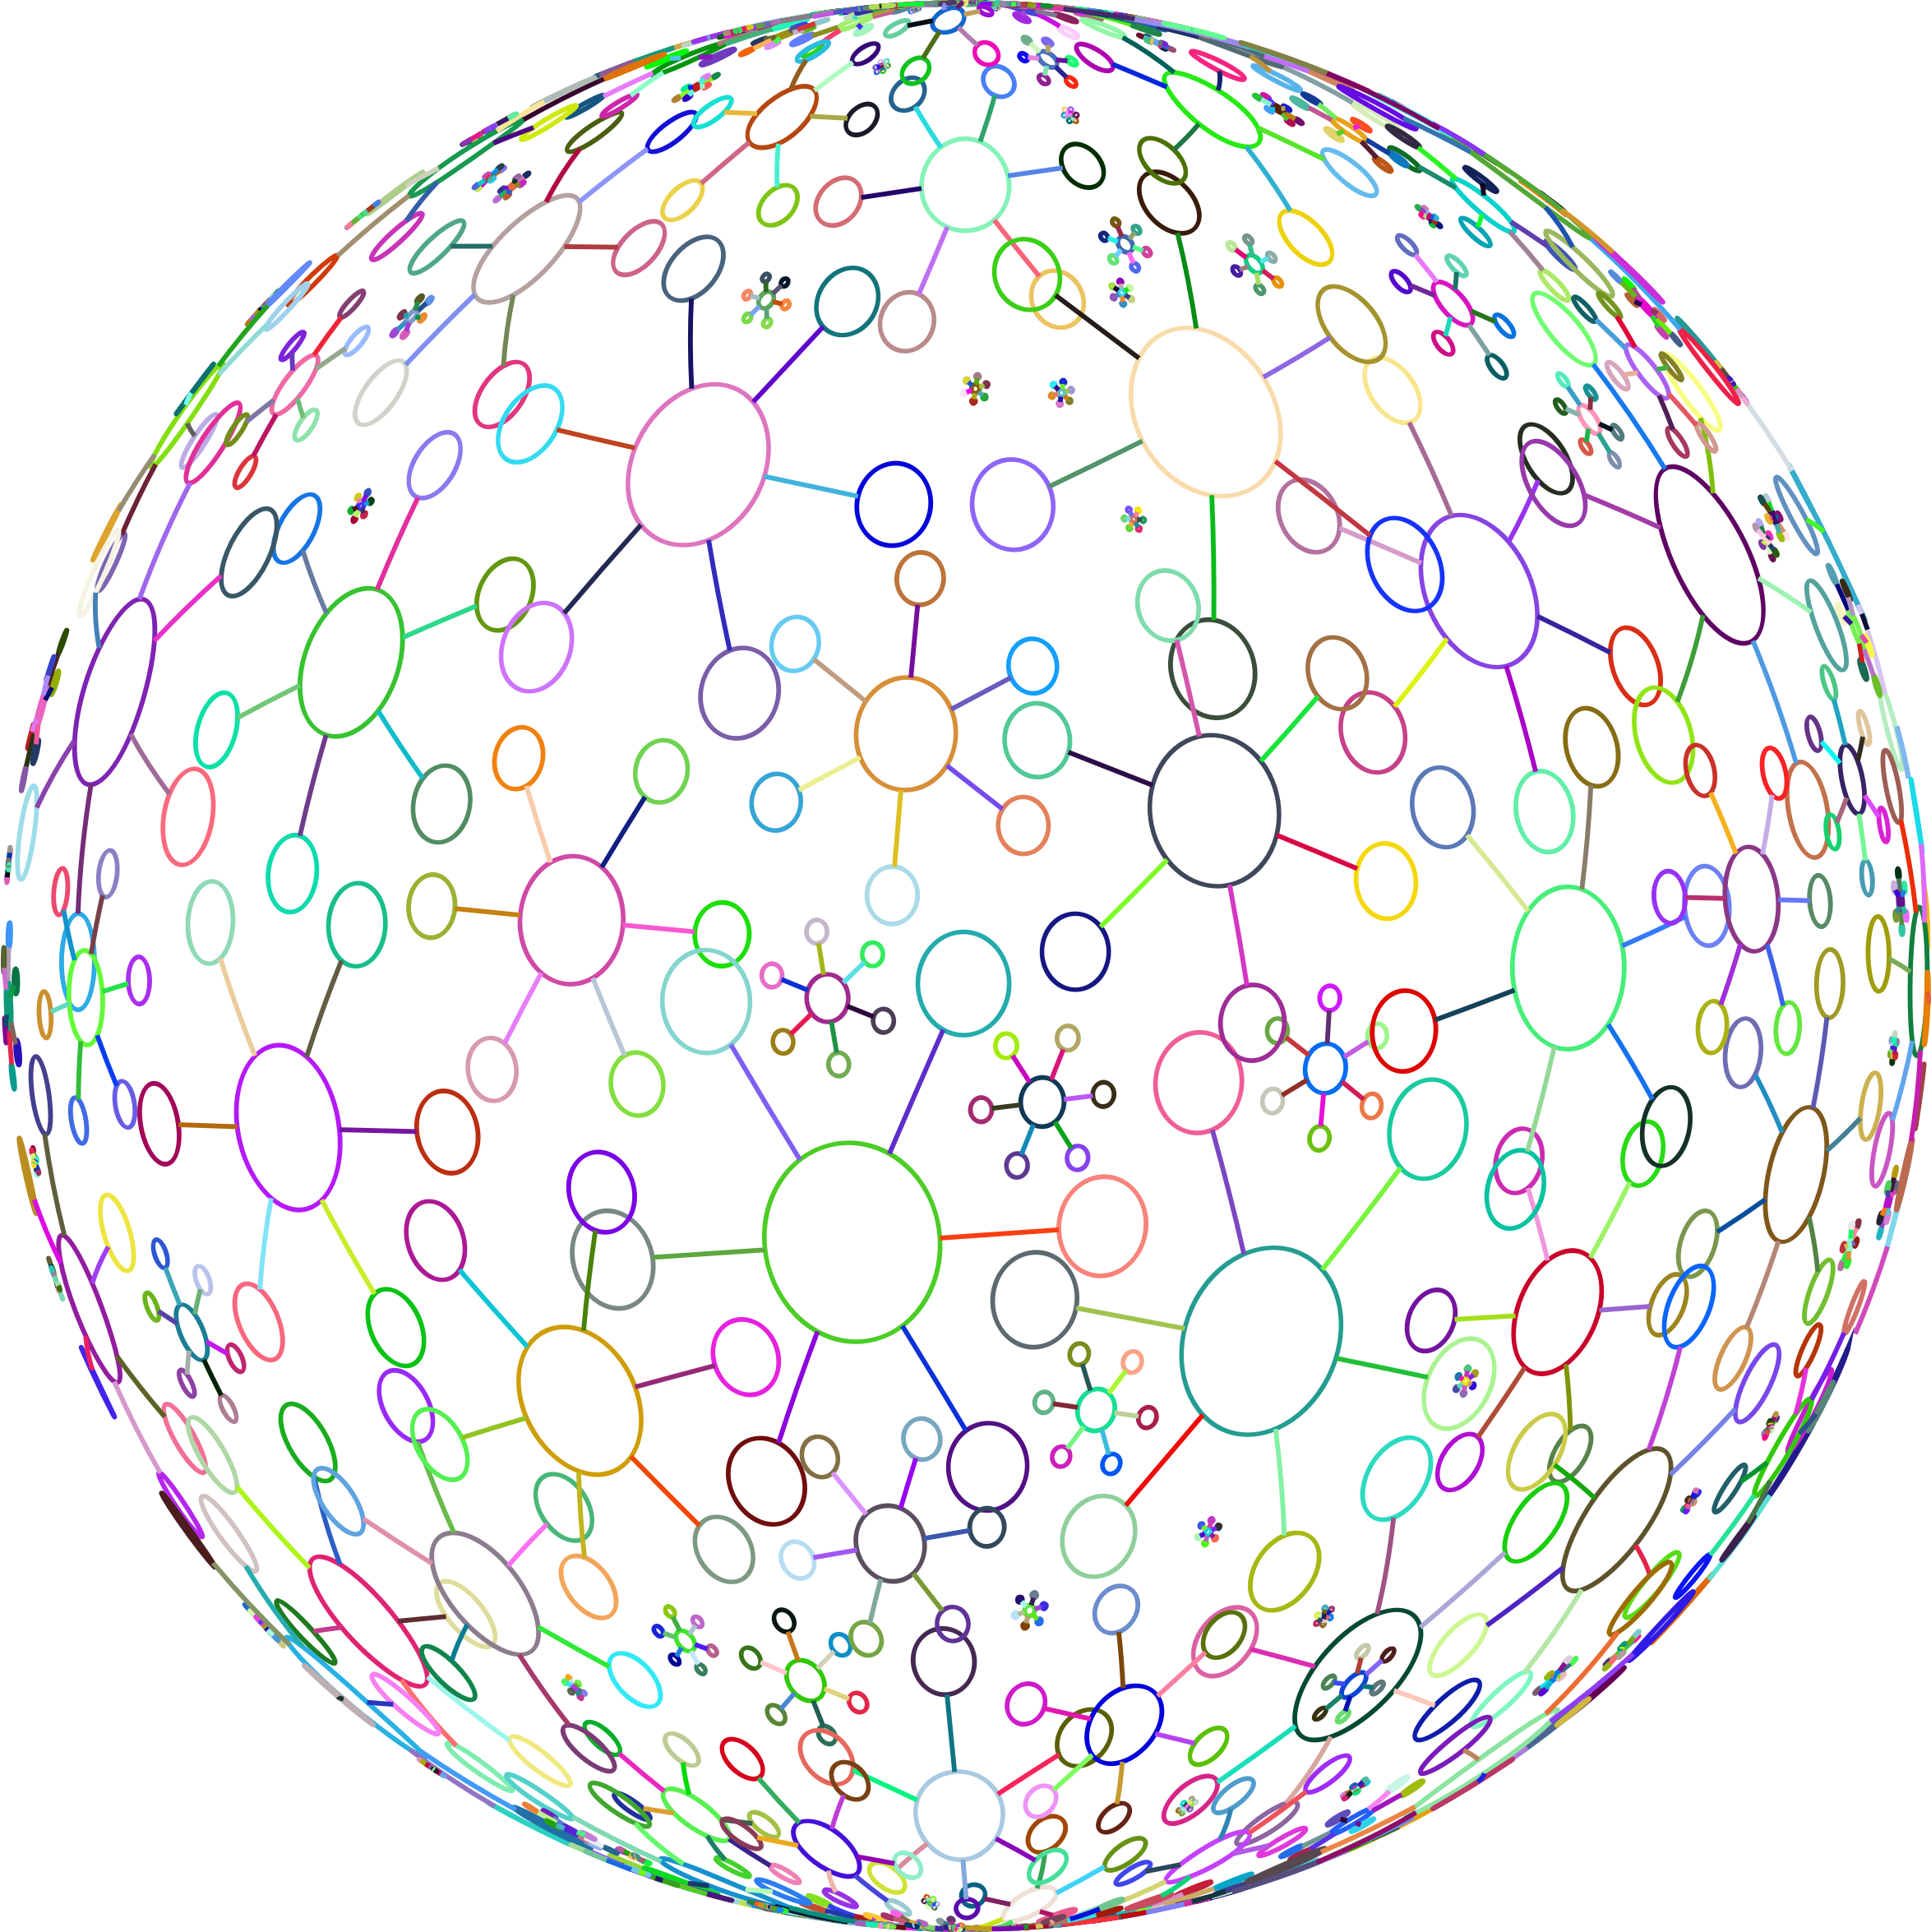 Abstract Molecular Sphere Prismatic by GDJ